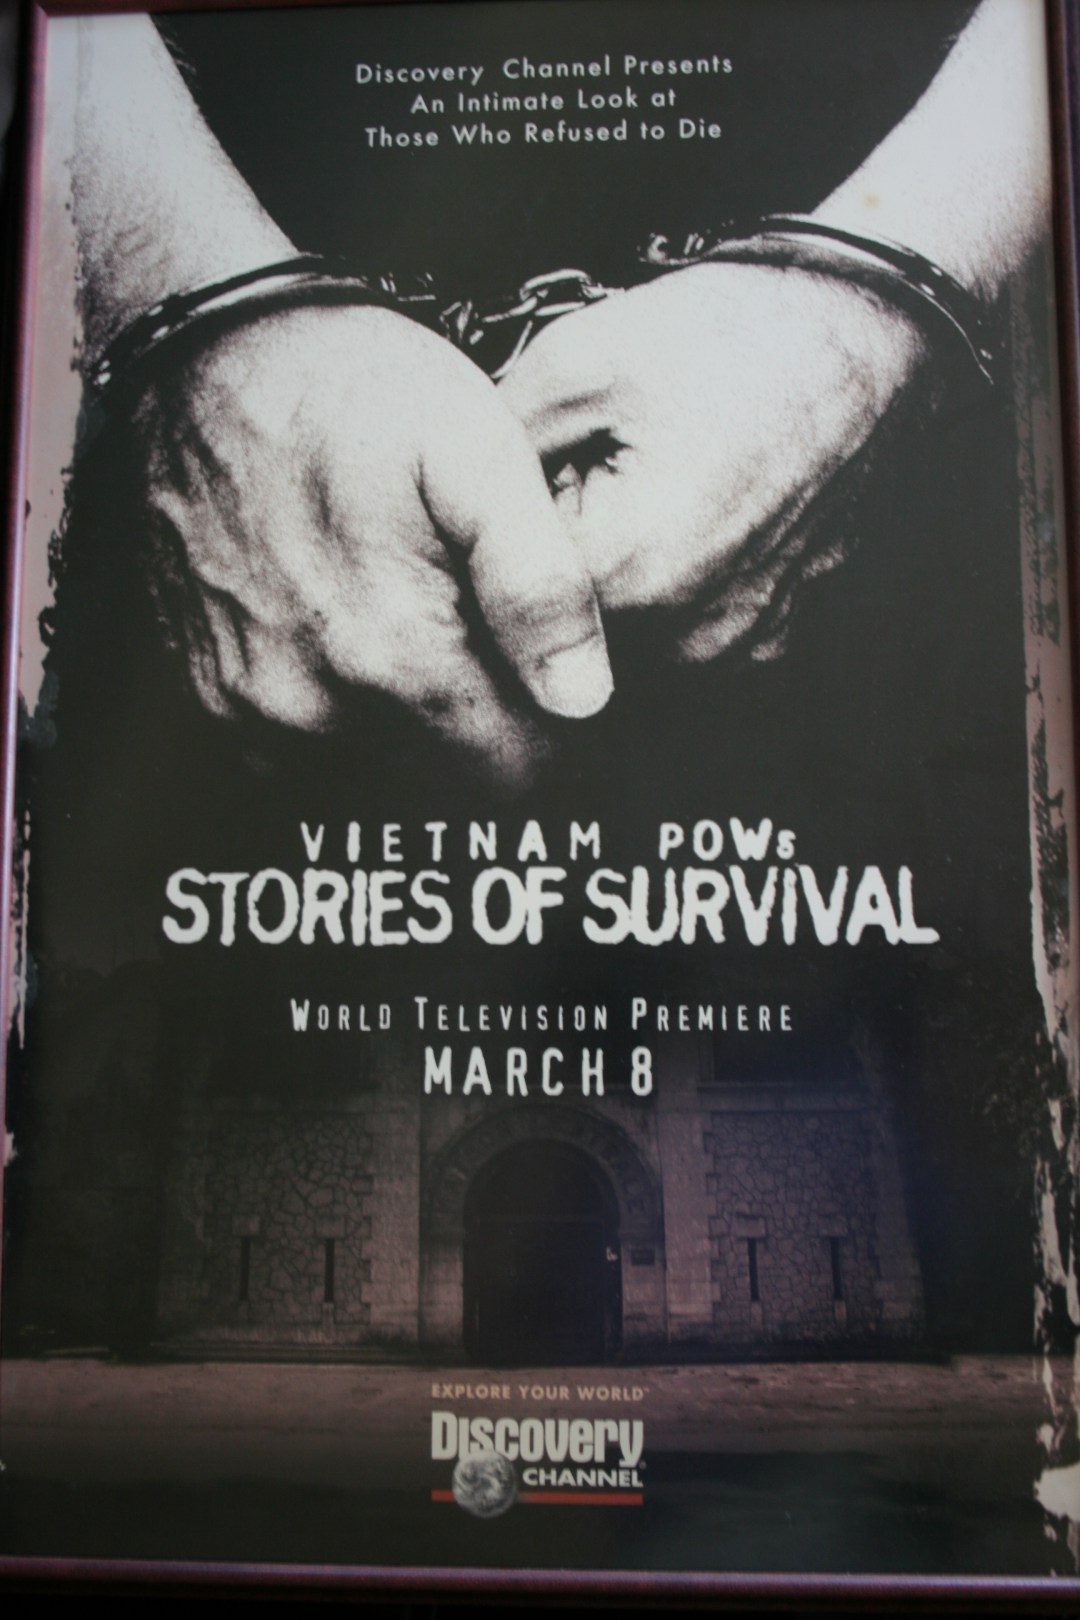 POW - Vietnam POWs Stories of Survival - Discovery Channel - Emmy Award - Graham Knight - Filmmaker